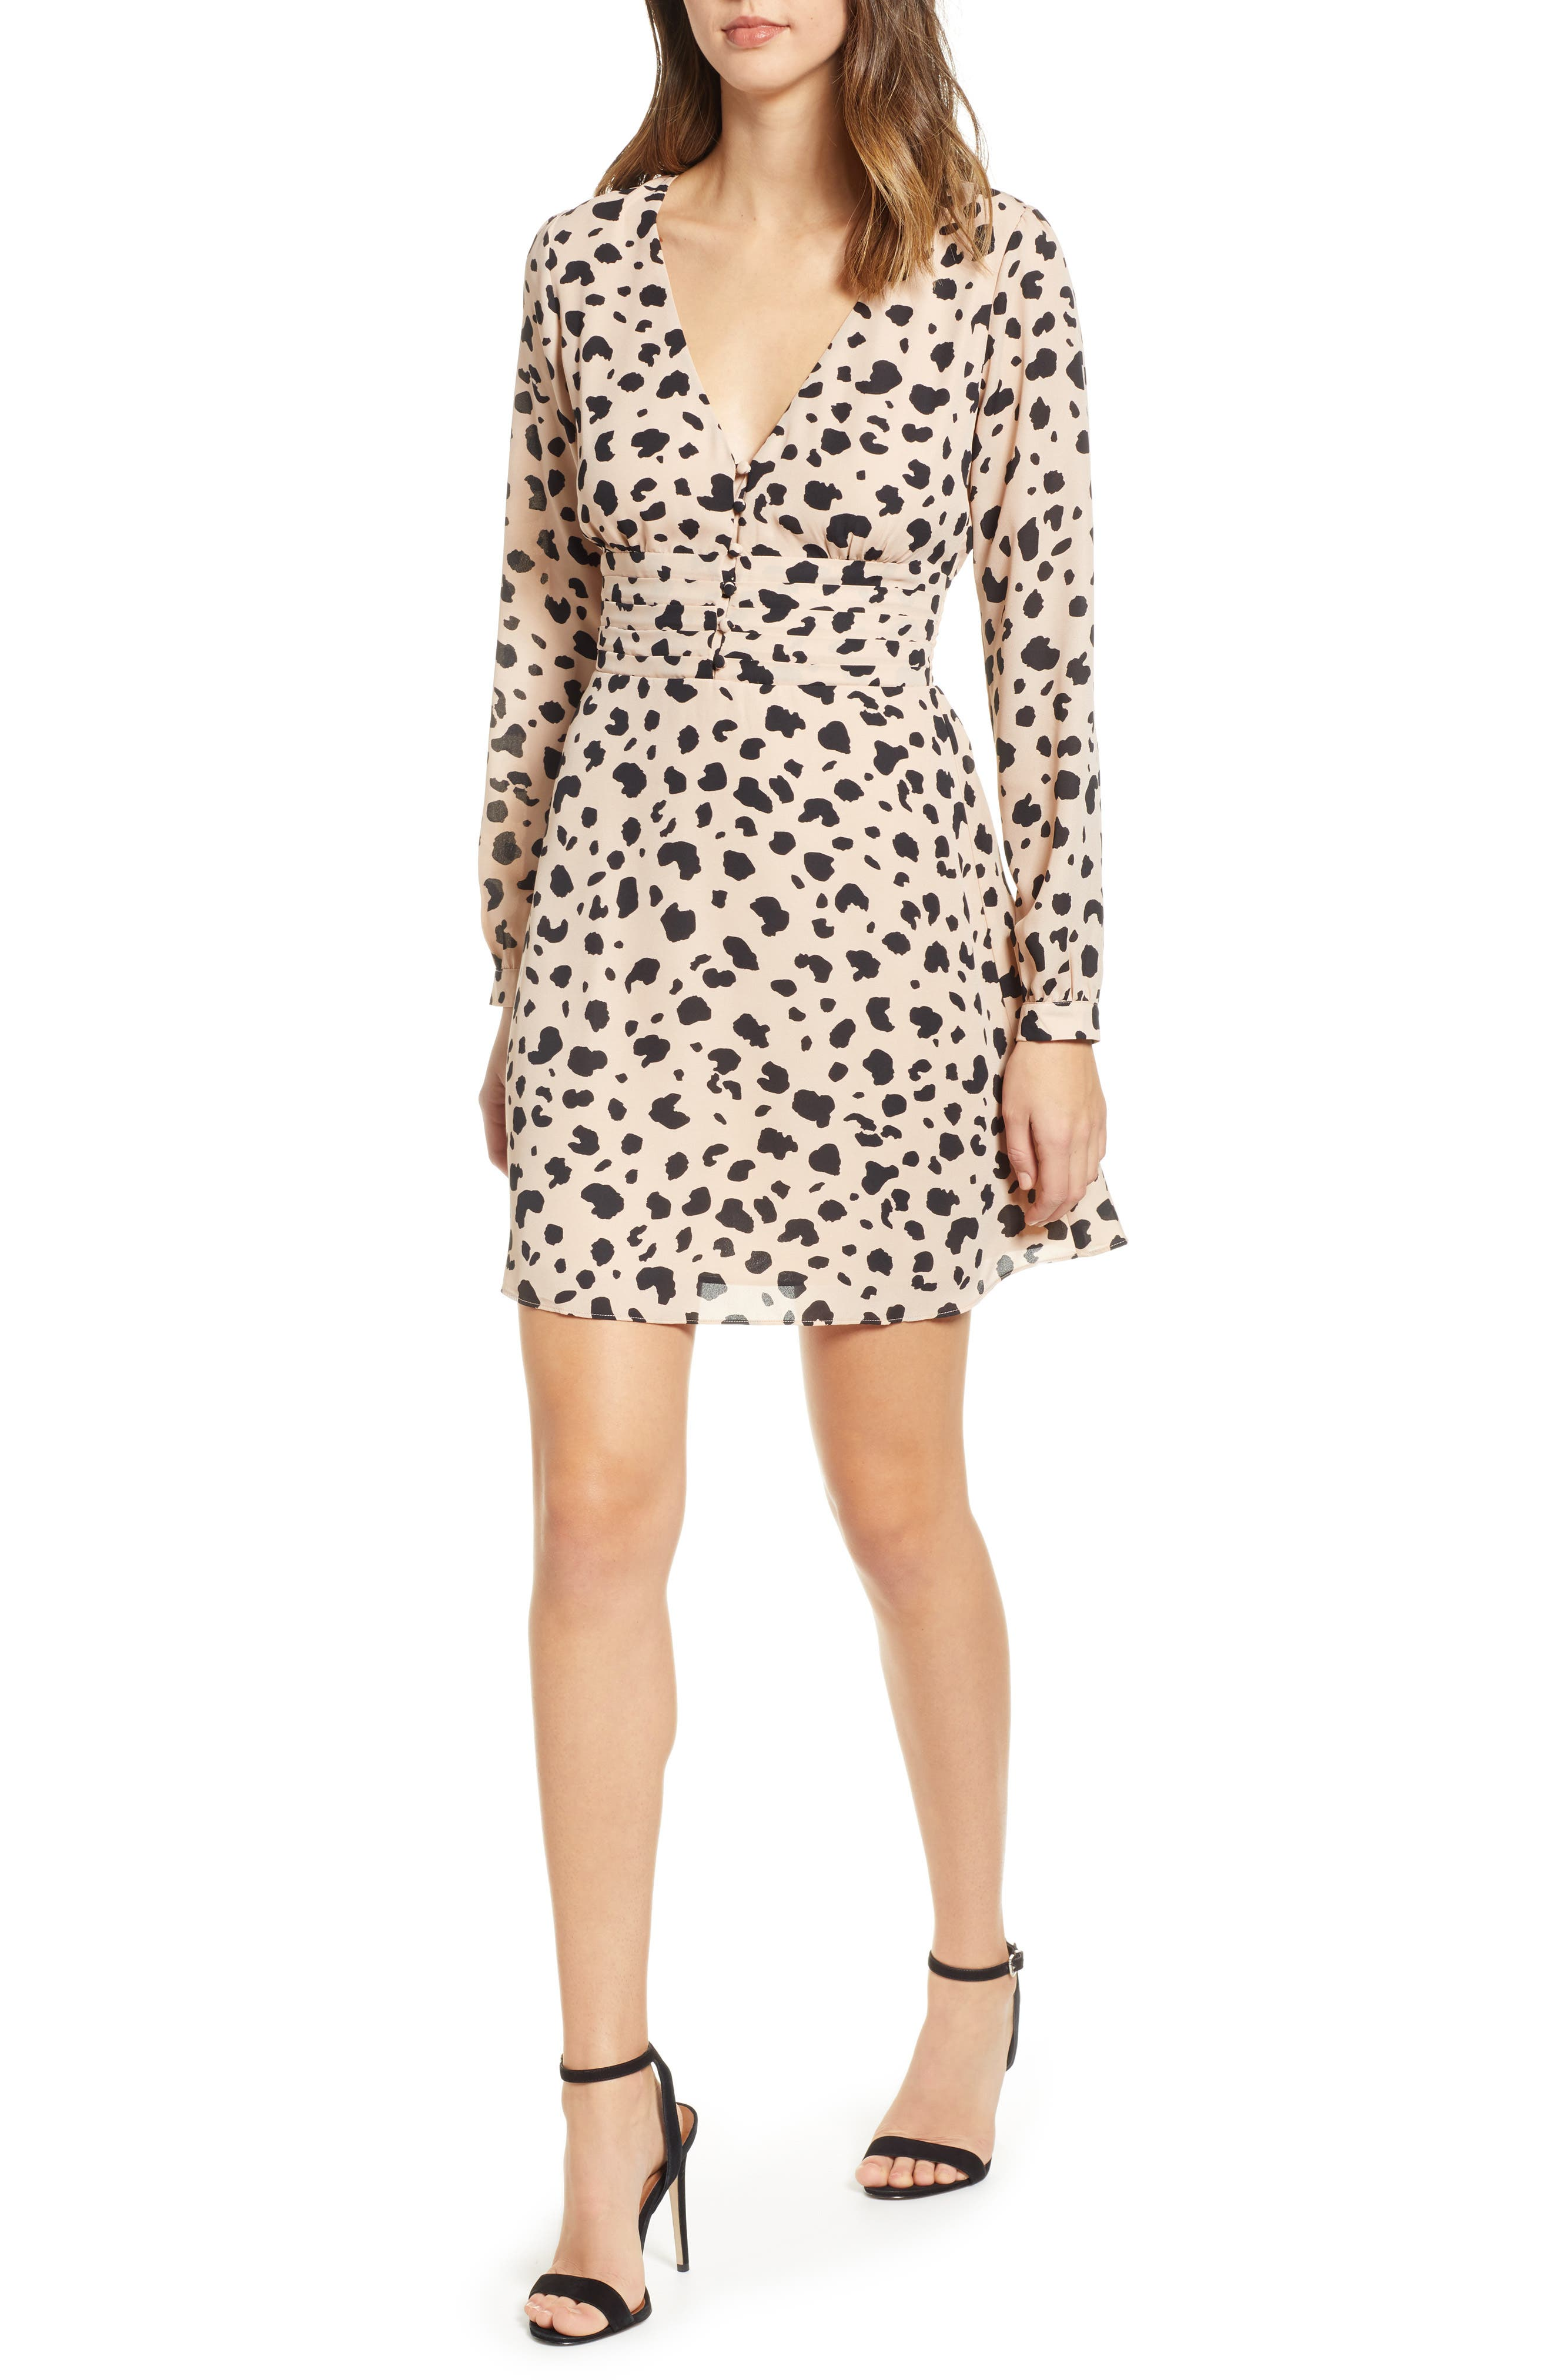 Socialite Print Button Dress, Black